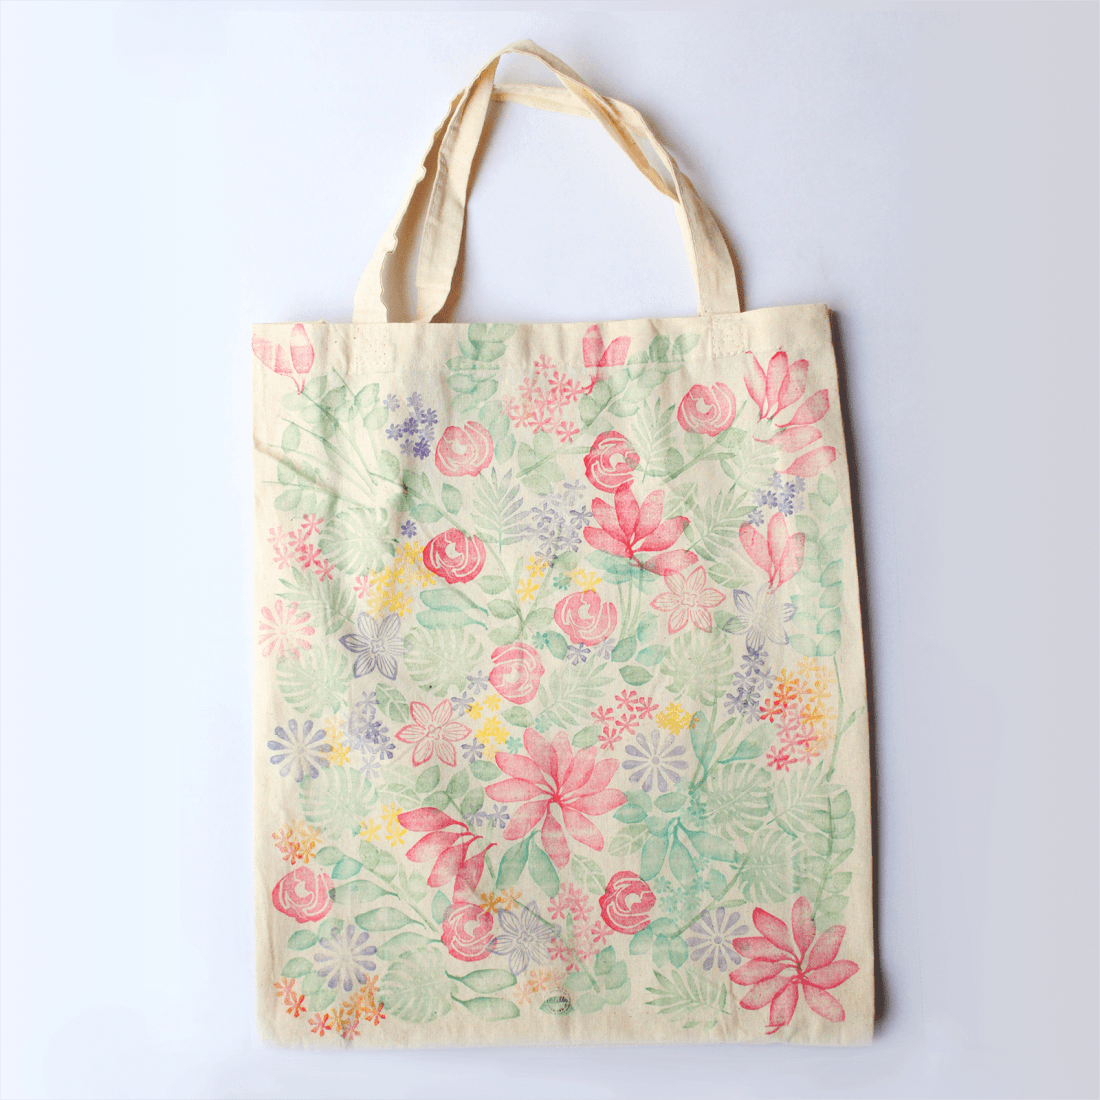 Party Bag Lady - Handprinted floral tote FULL of all these marvellous goodies!